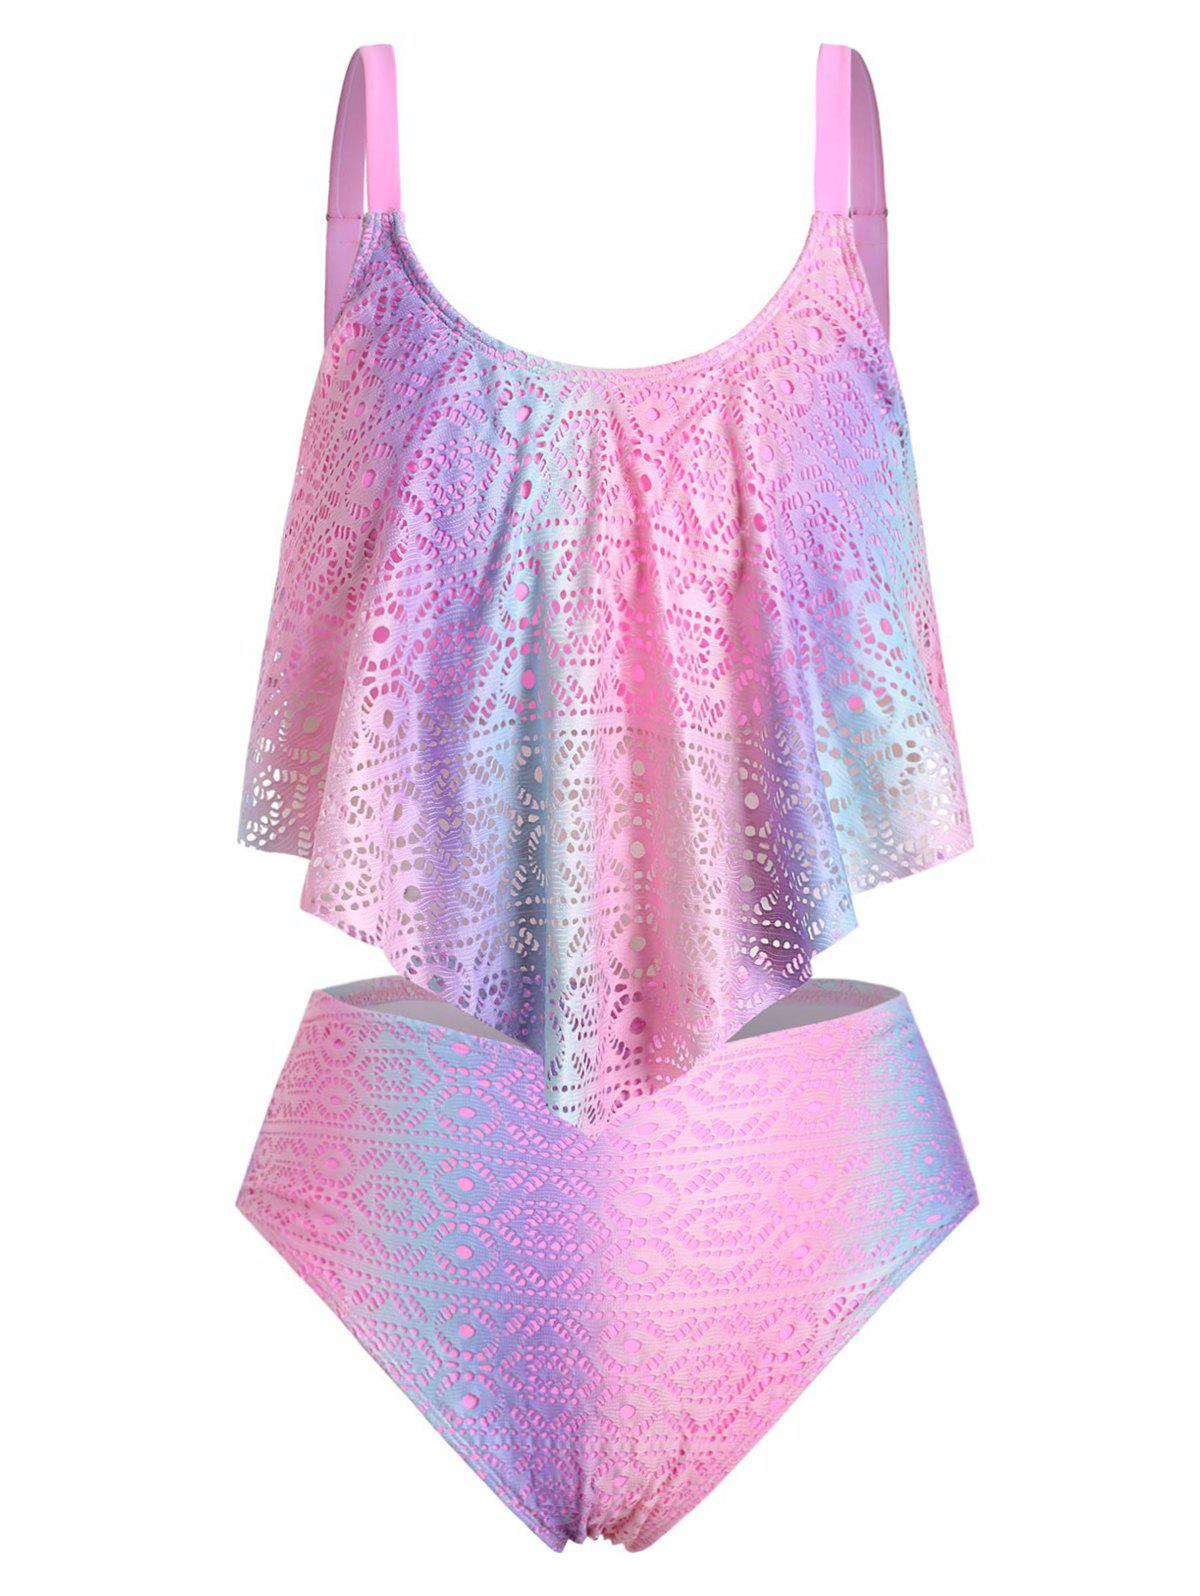 Flounce Perforated Ombre Plus Size Tankini Swimsuit - PINK 3X